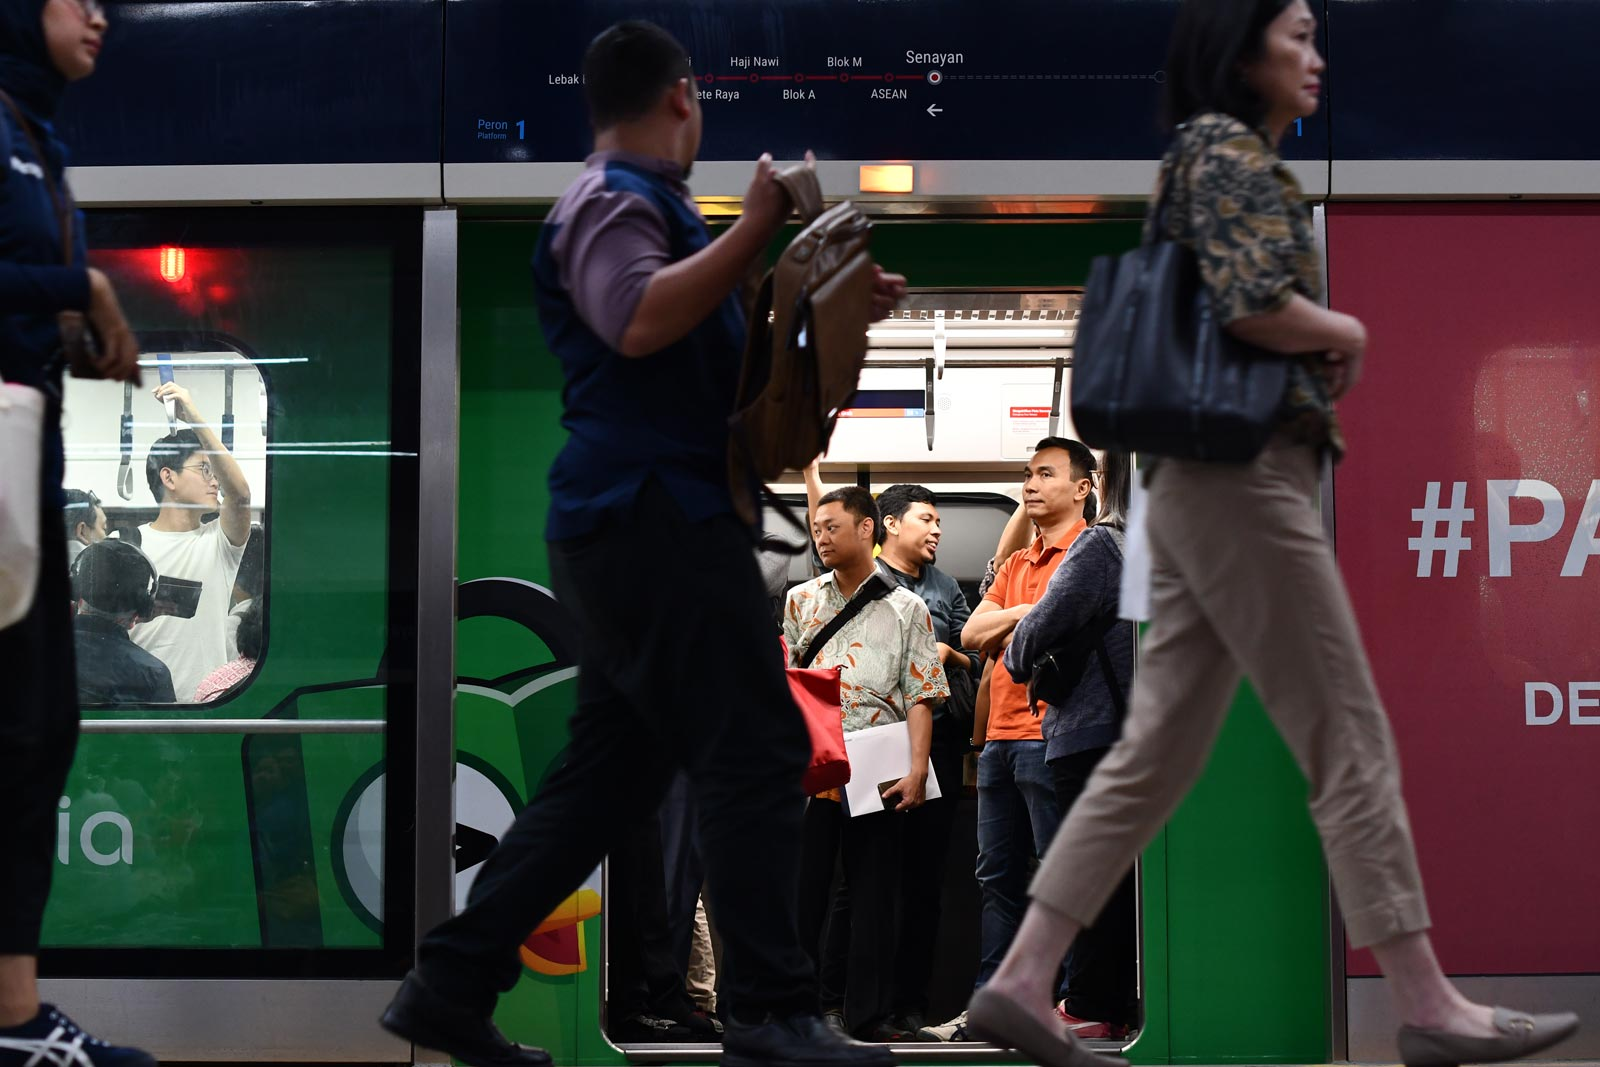 The Jakarta metro was a long-awaited infrastructure project that long pre-dated Widodo taking office but finally opened in 2019, shortly before Widodo's successful re-election as president. Photo: Simon Roughneen